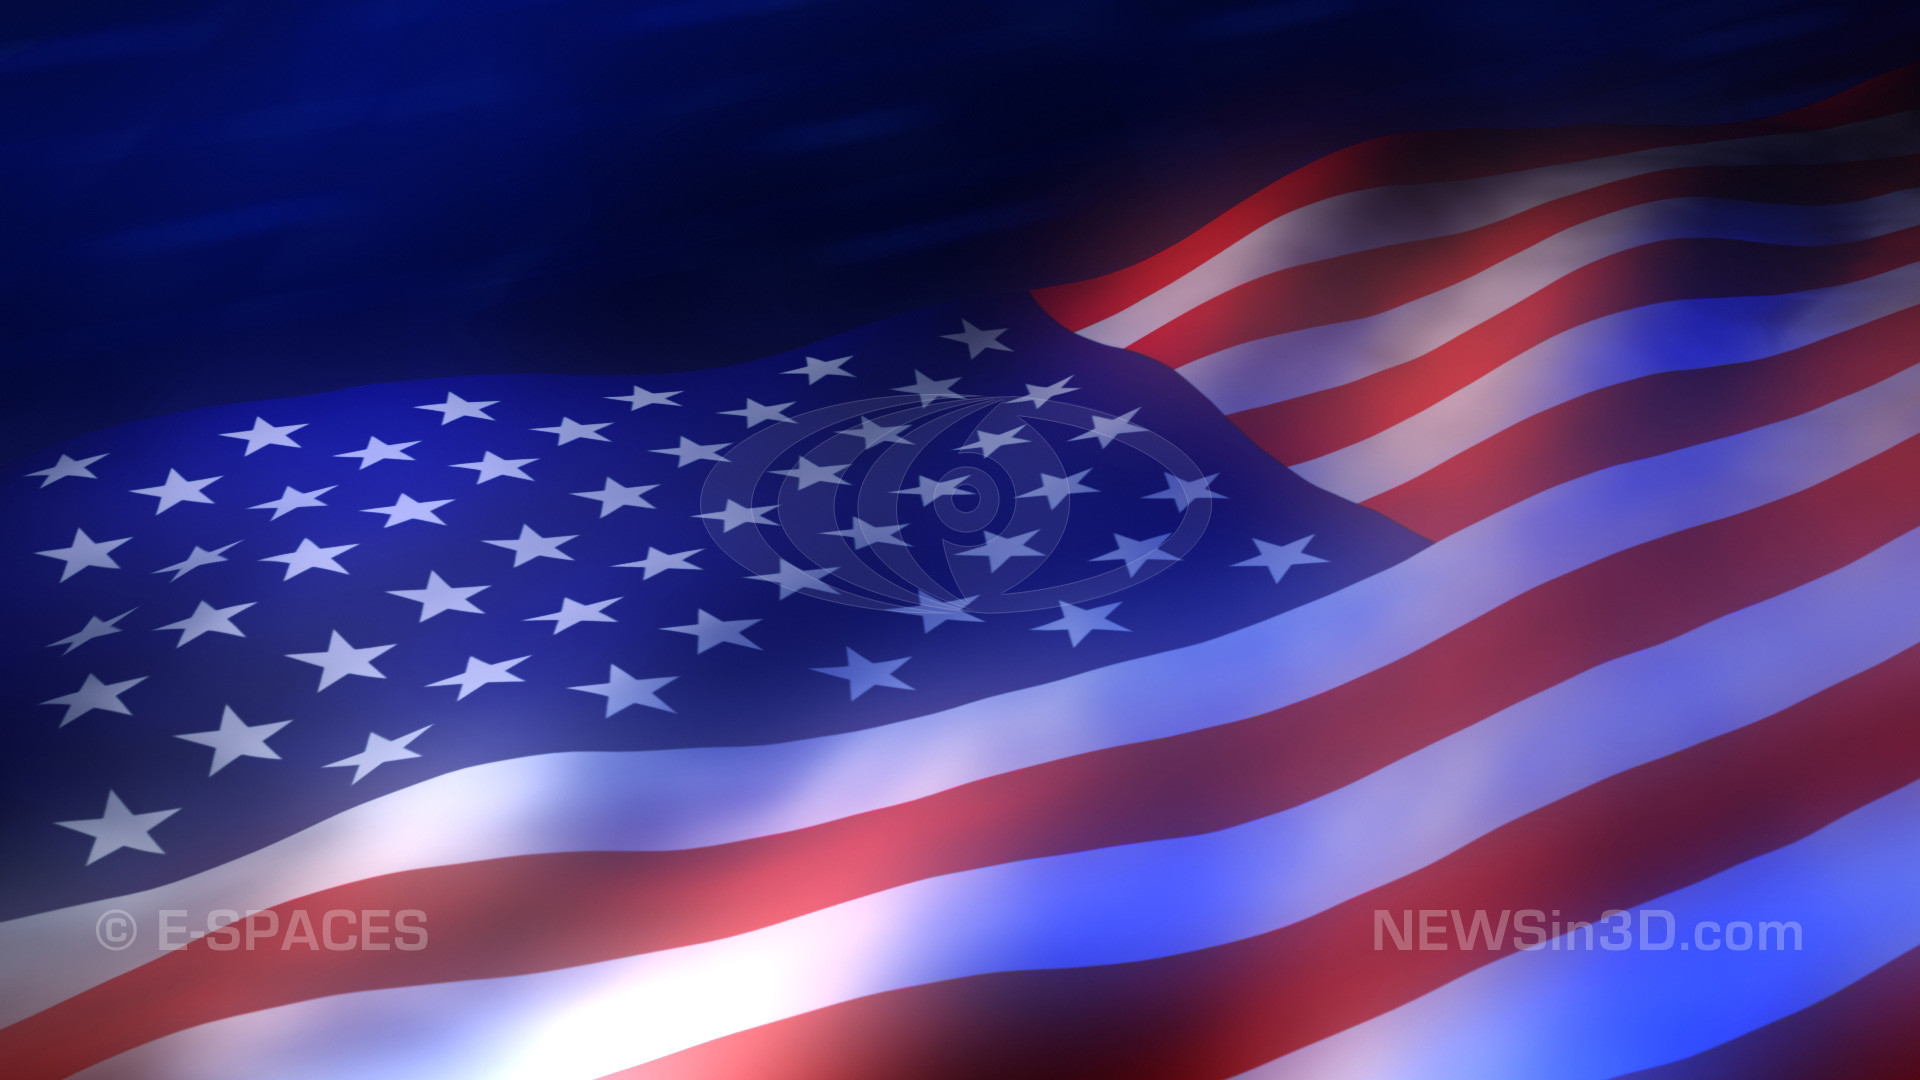 American flag animated background high definition preview still